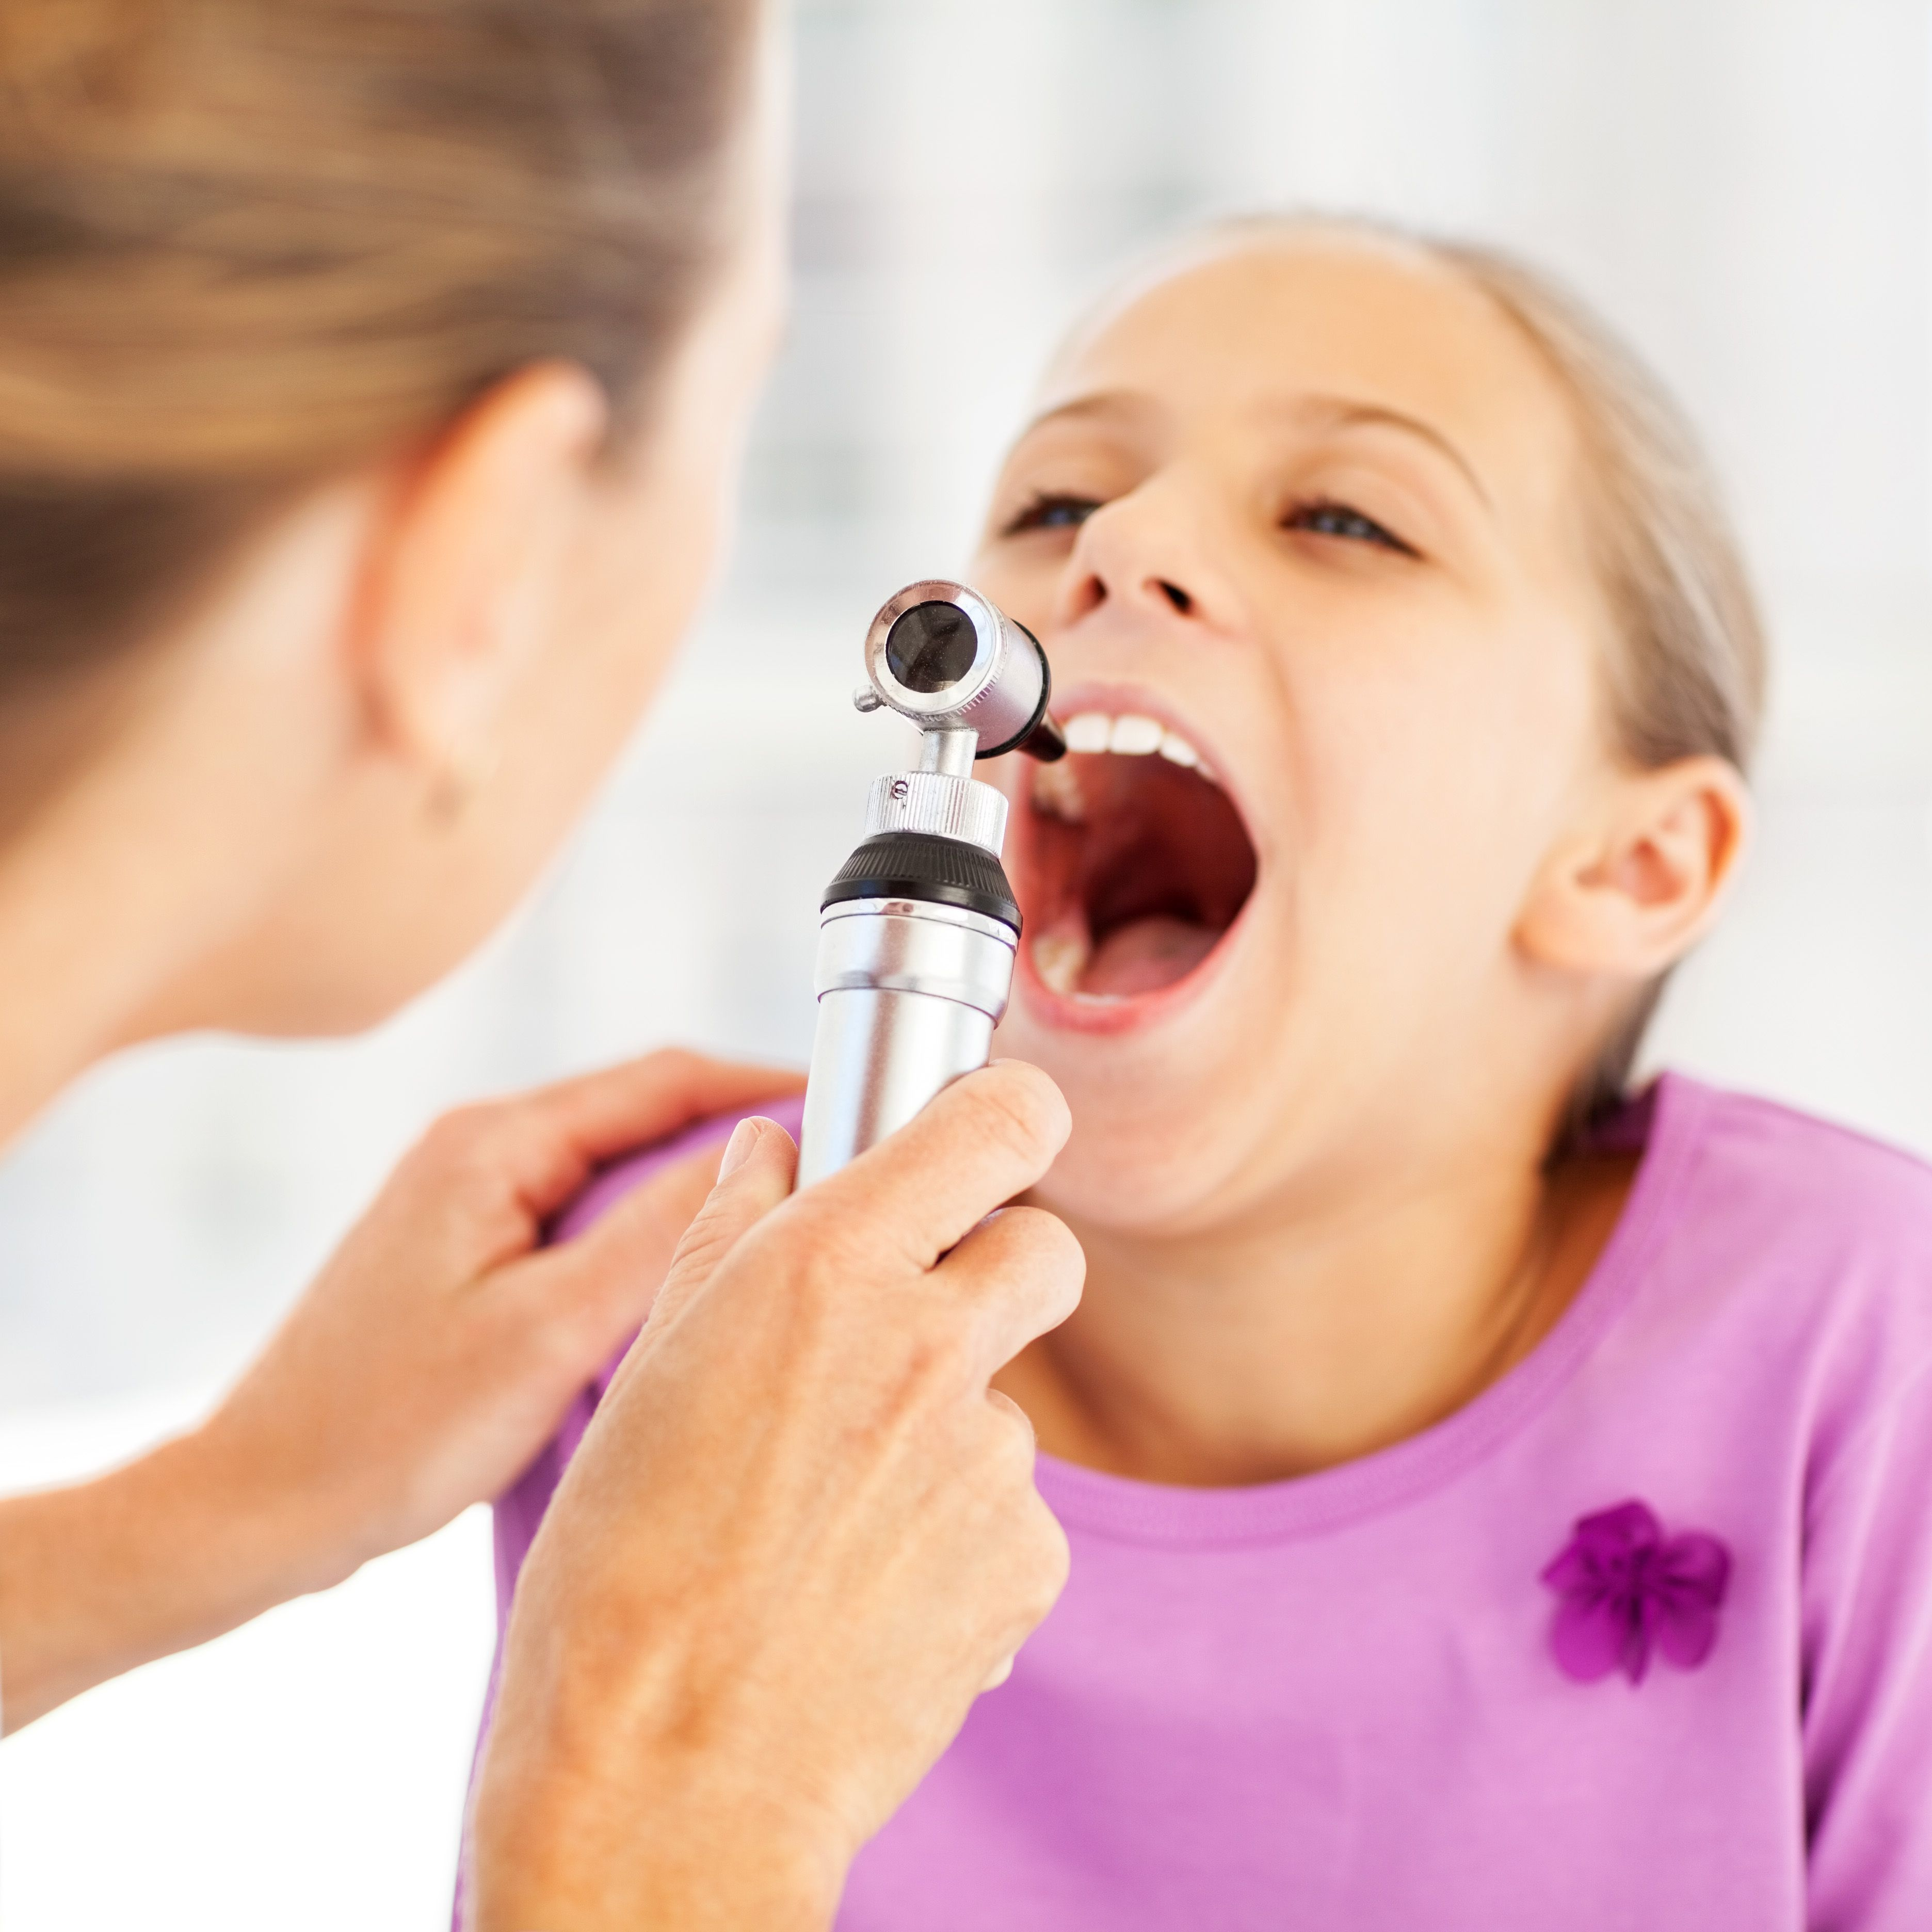 Can Your Tonsils Grow Back After a Tonsillectomy?